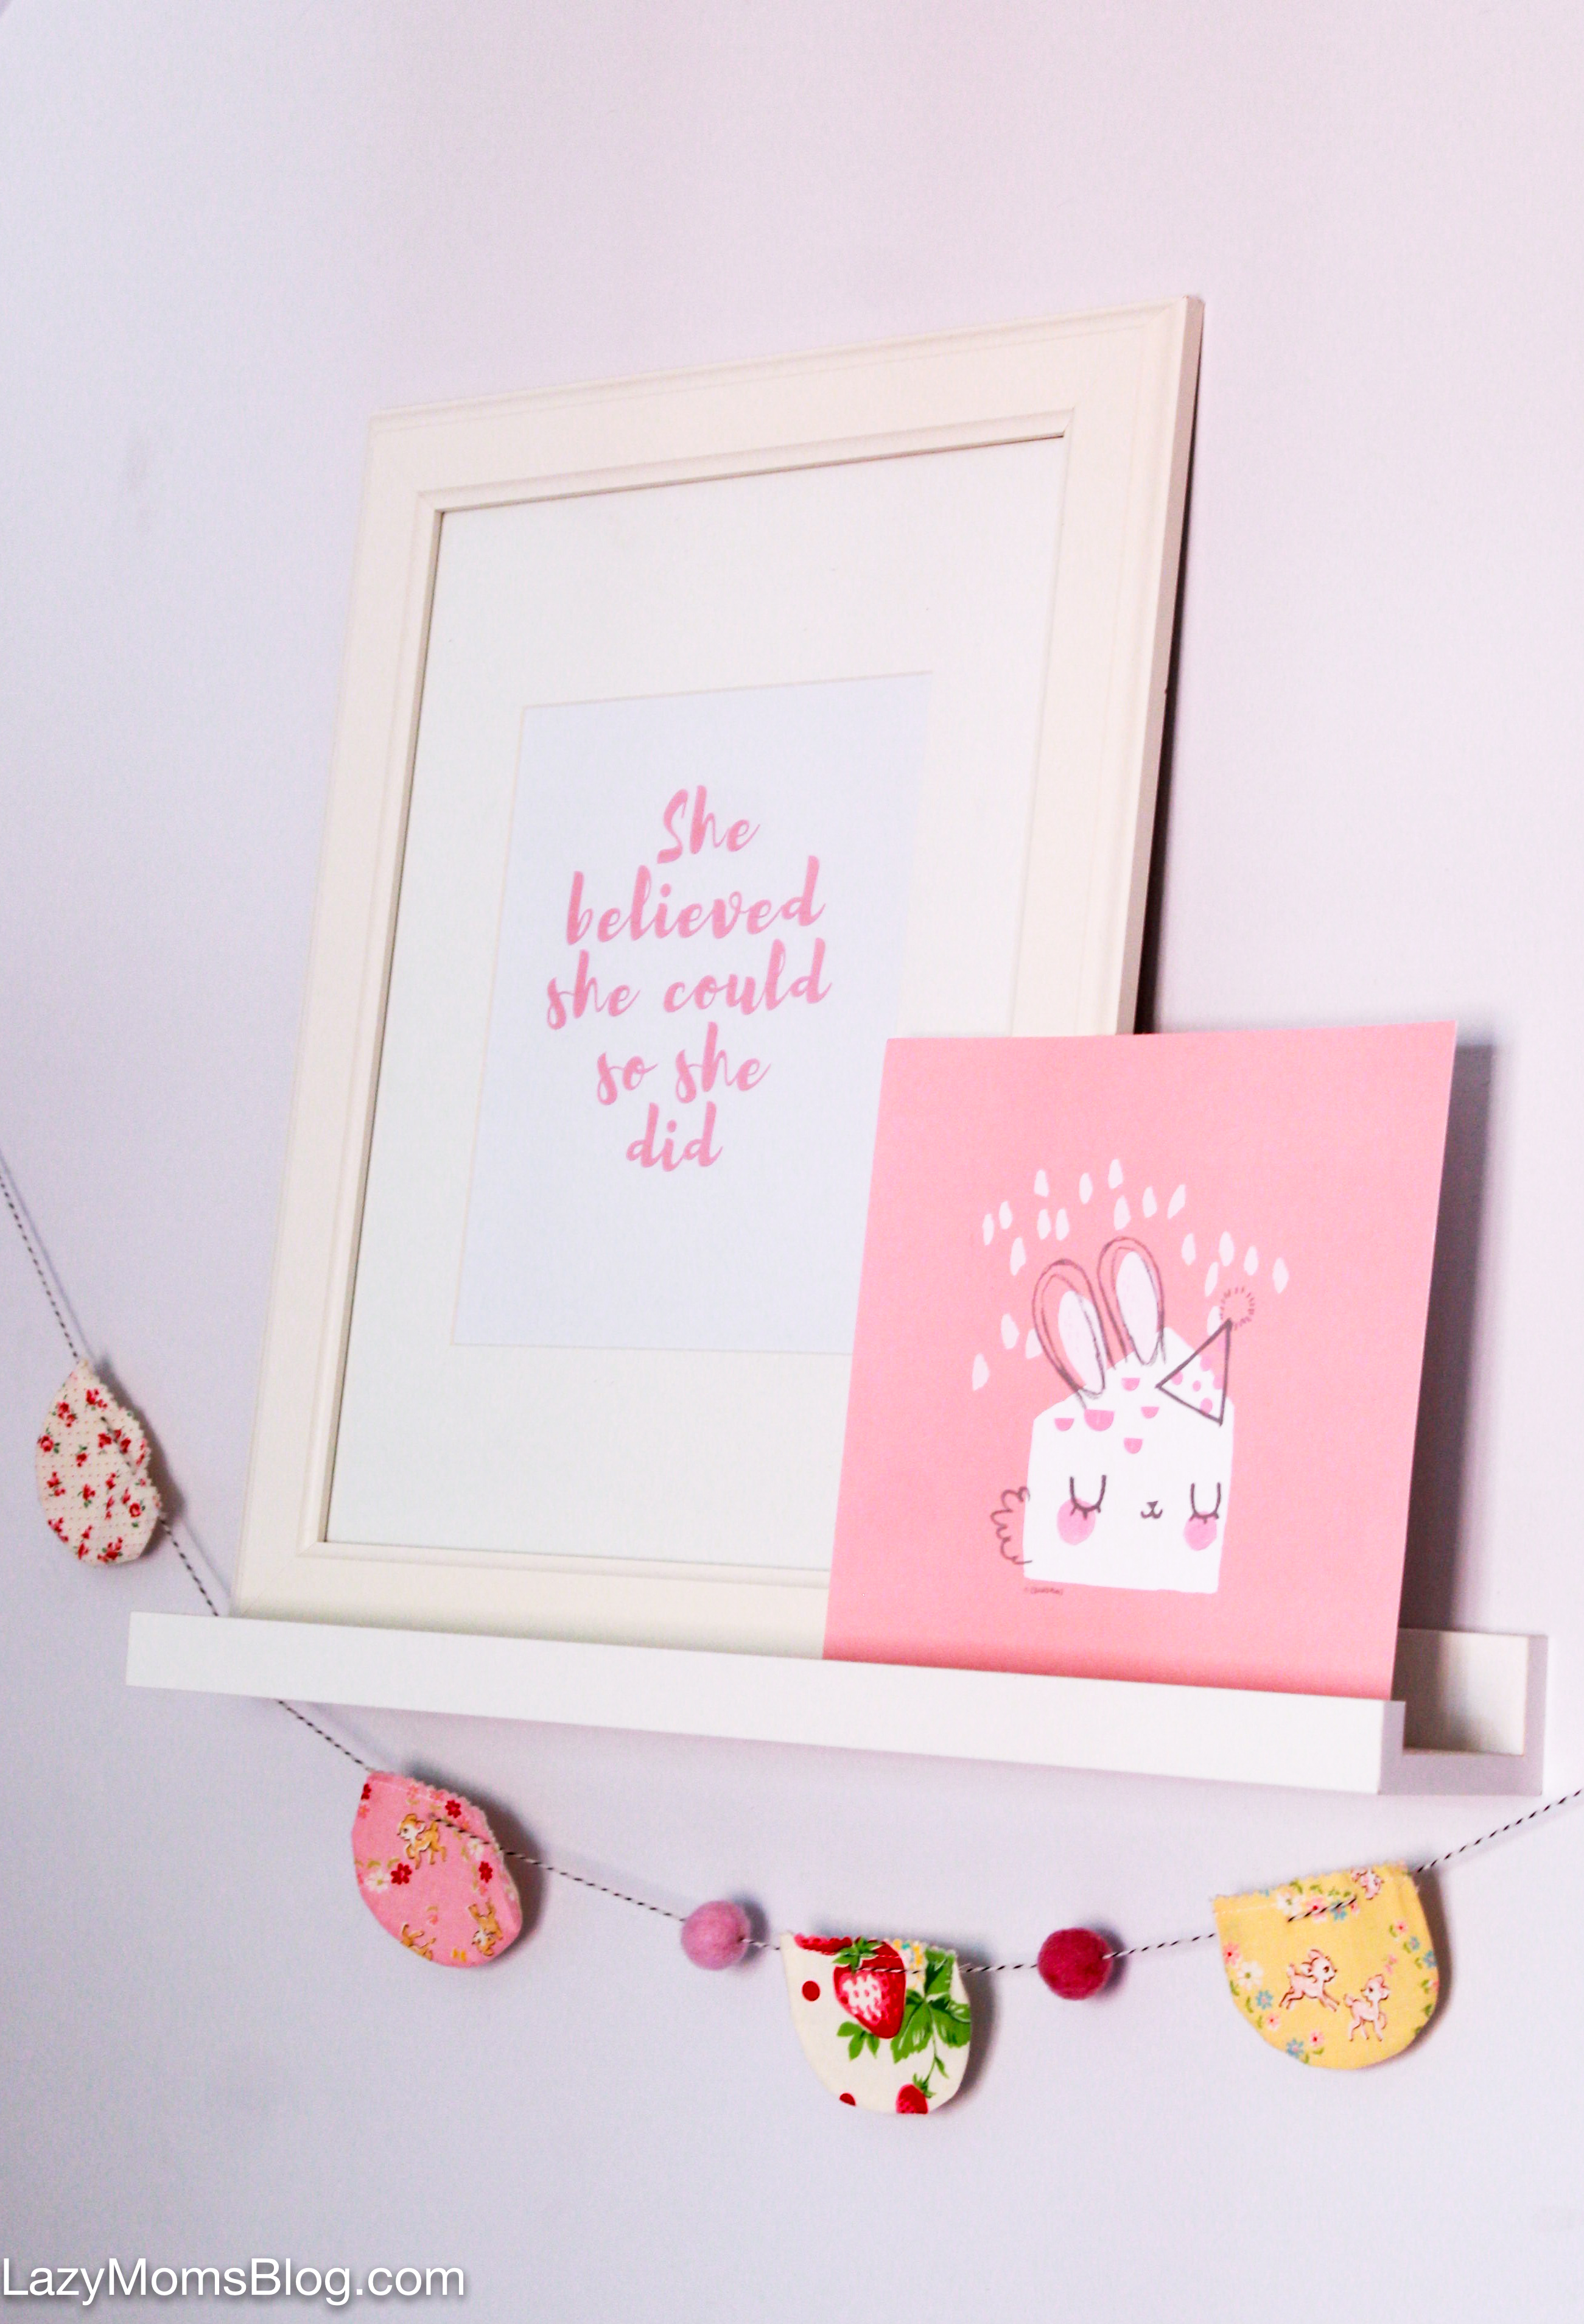 DIY inspiring quote prints